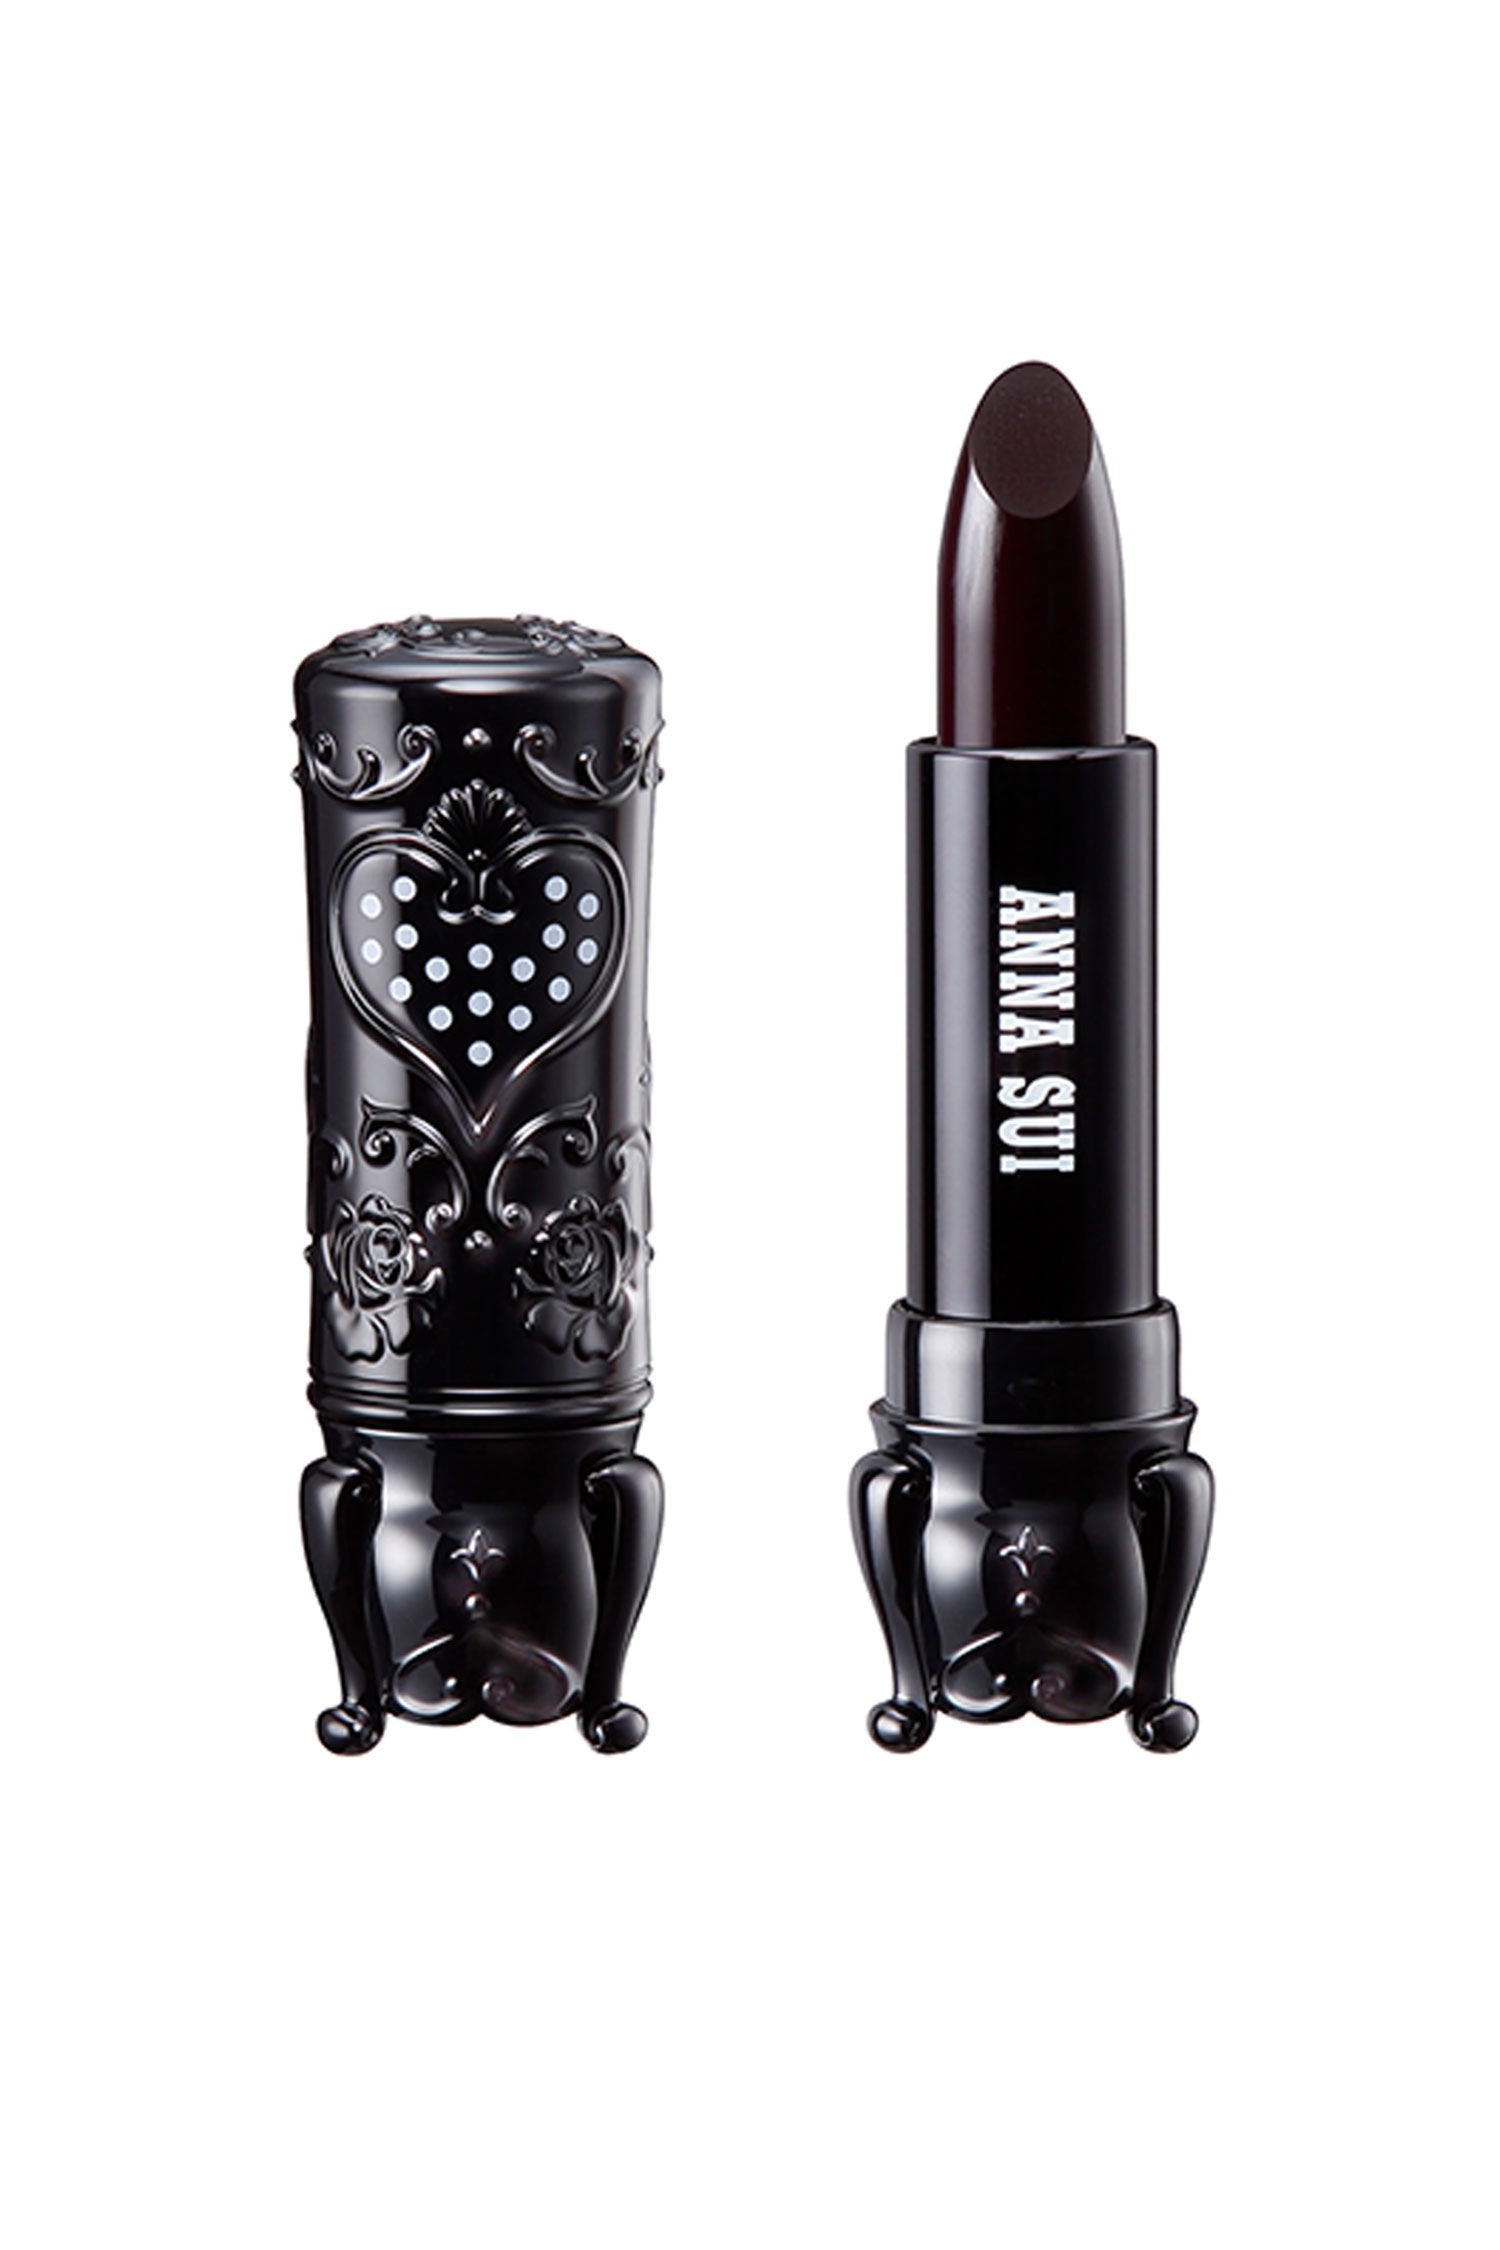 New: Sui Black - Rouge S - Anna Sui